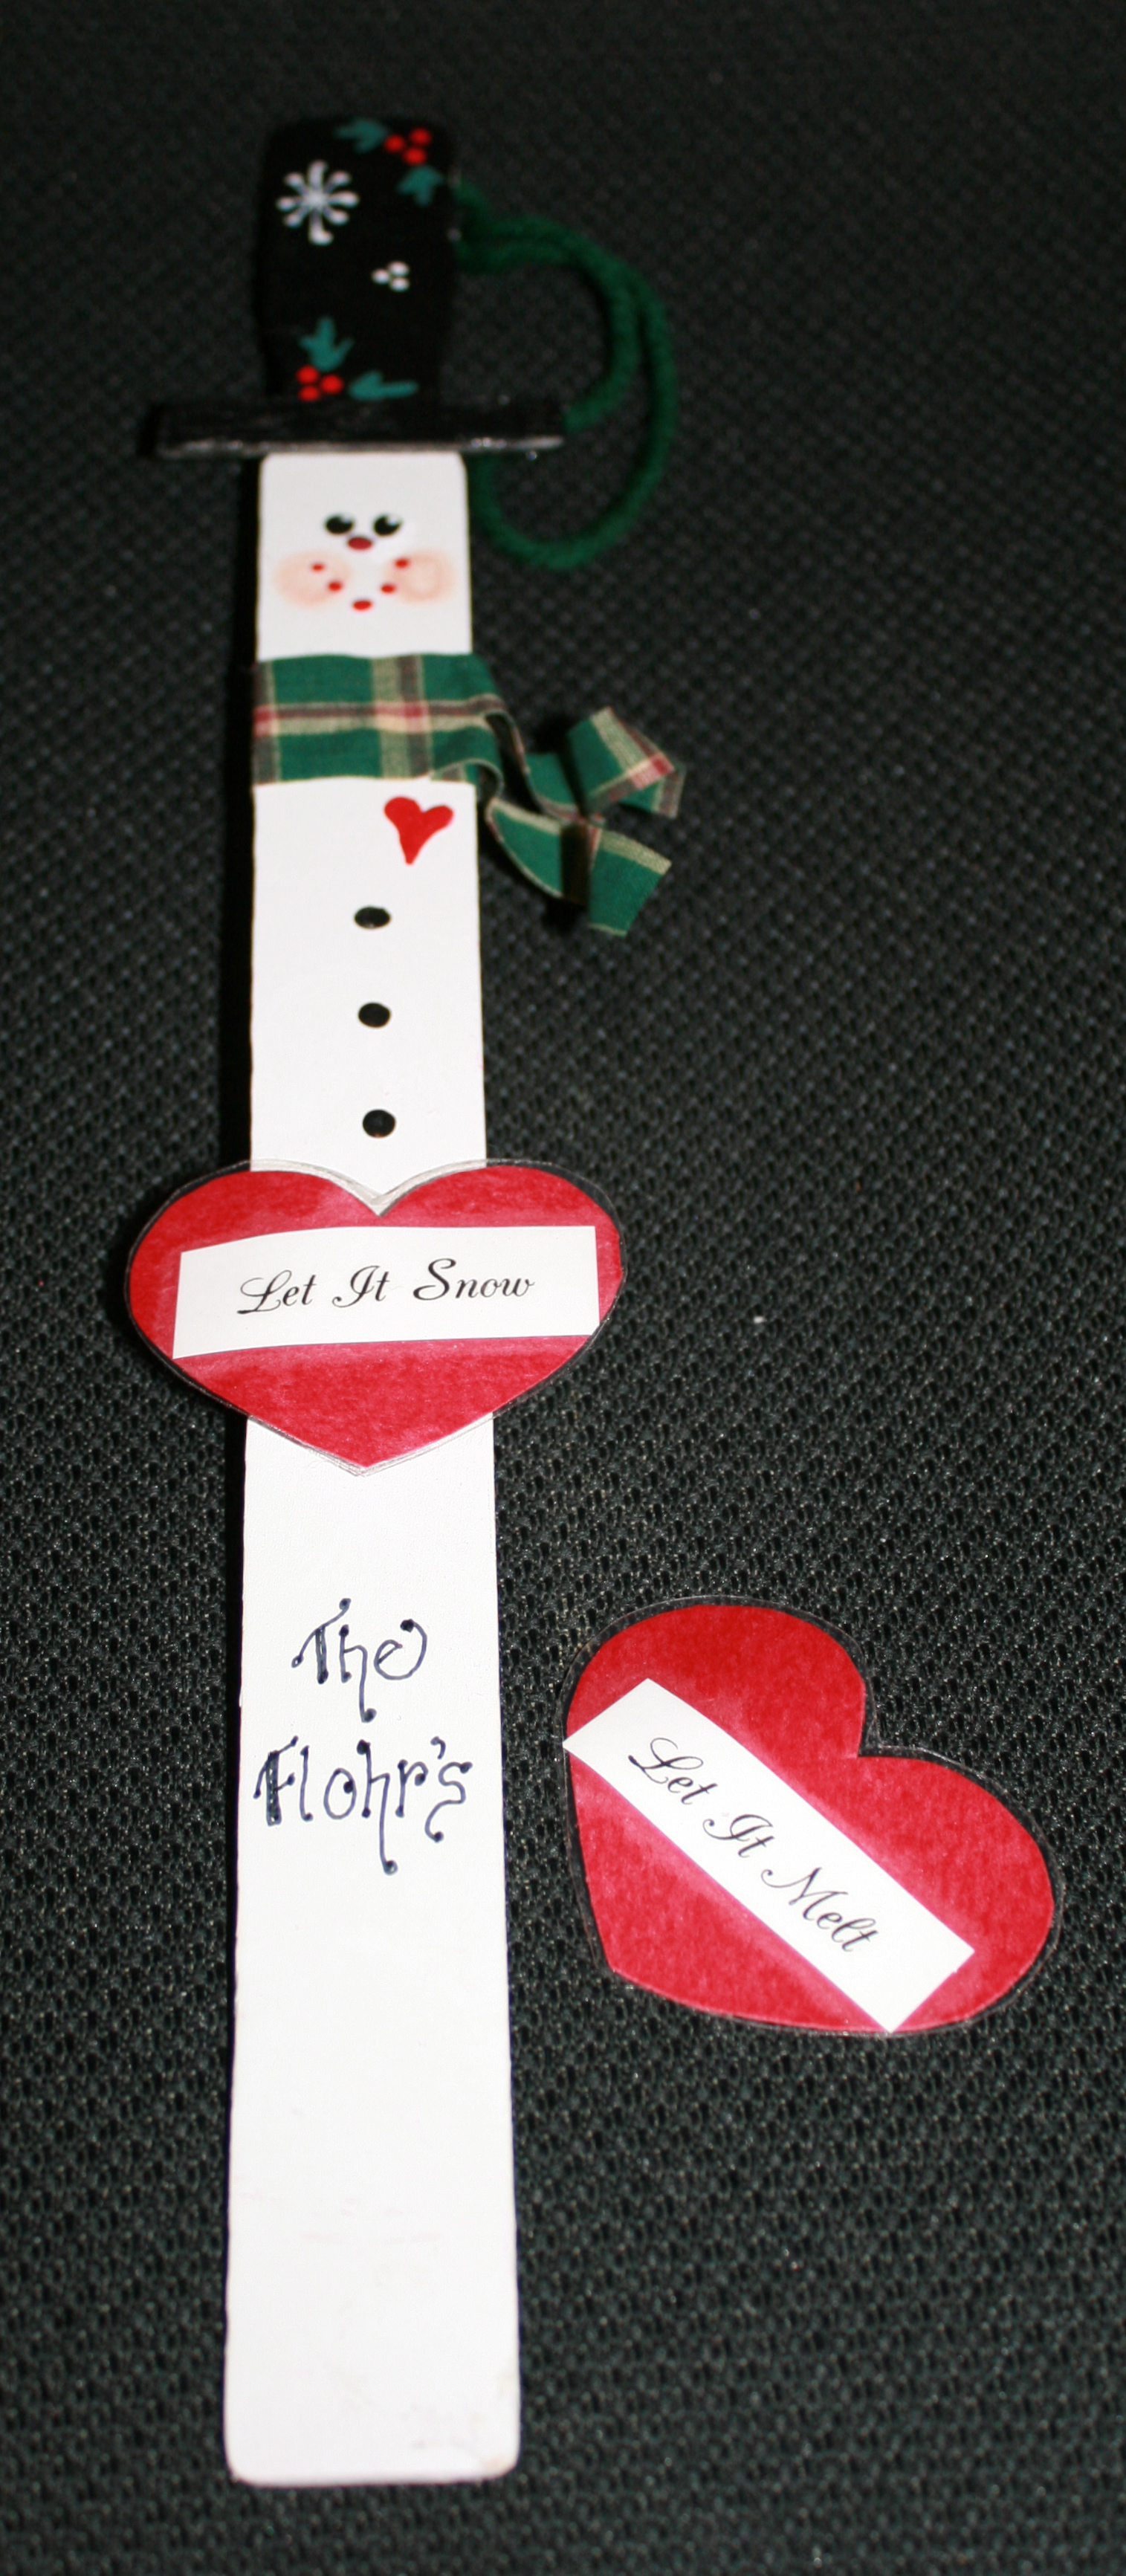 paint stick snowman, Christmas gifts kids can make, Christmas crafts, snowman crafts, snowman activities, recycled art, recycling activities, snowmen,